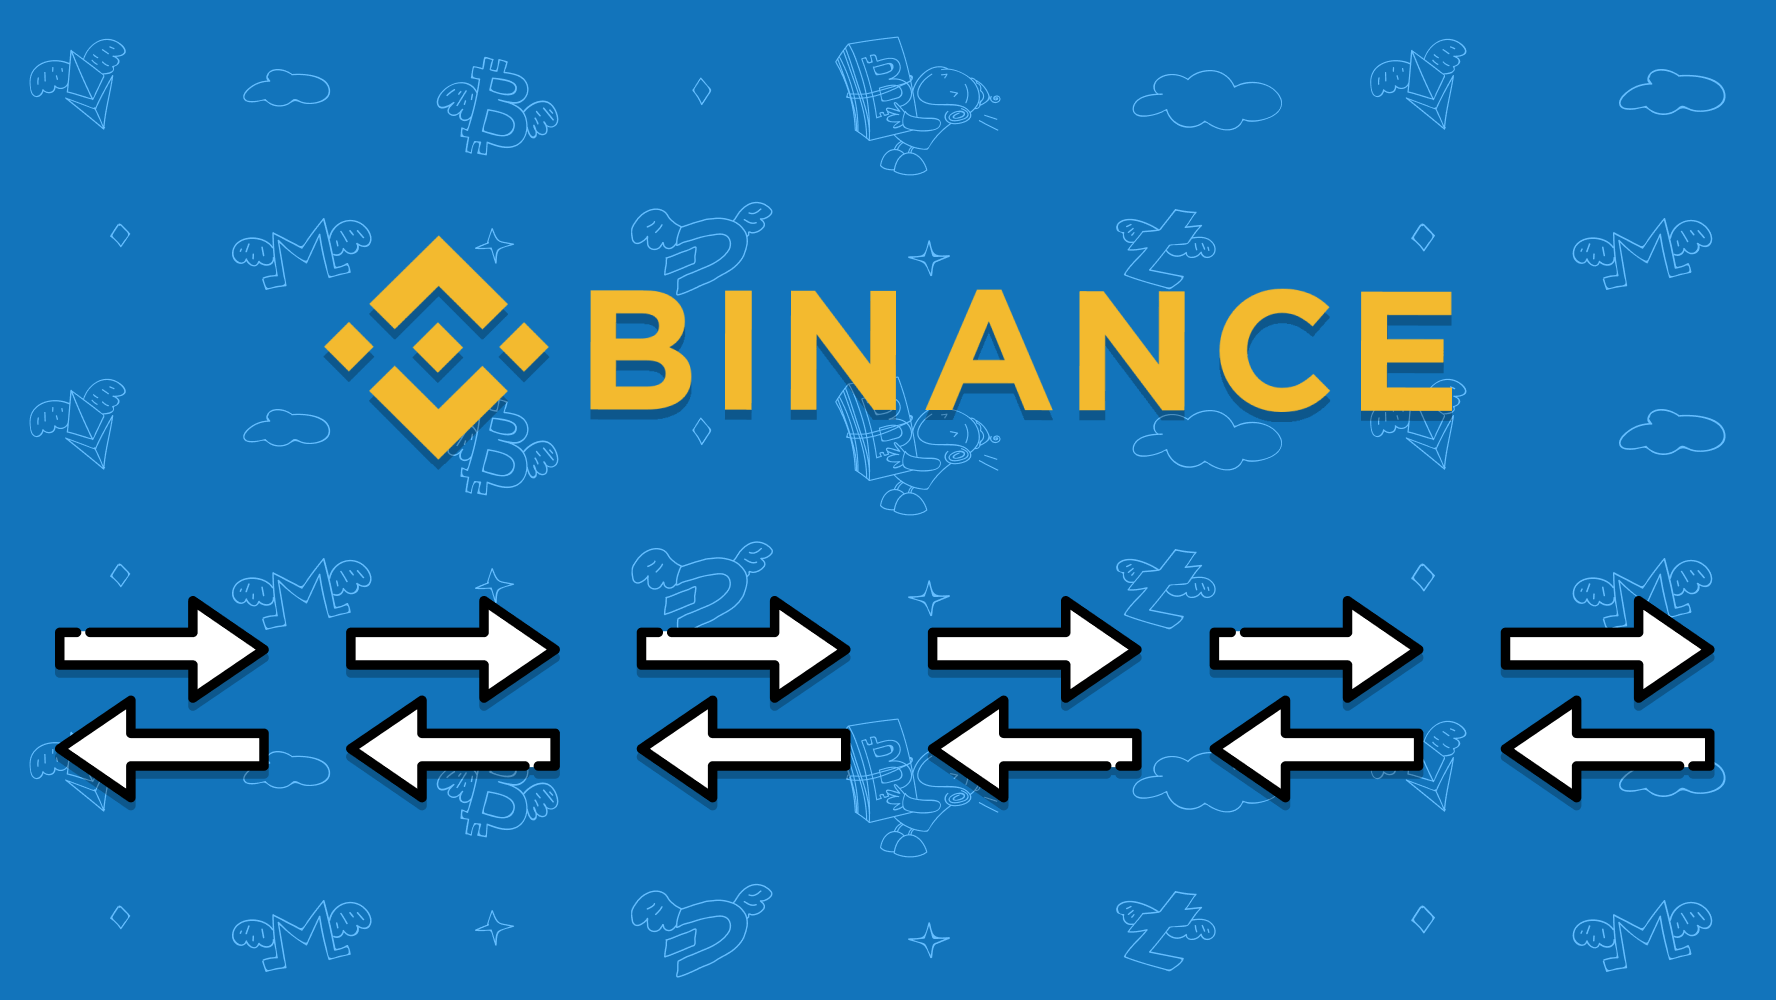 Binance: Review, Fees for Trading, Deposits & Withdrawals – TradeSanta